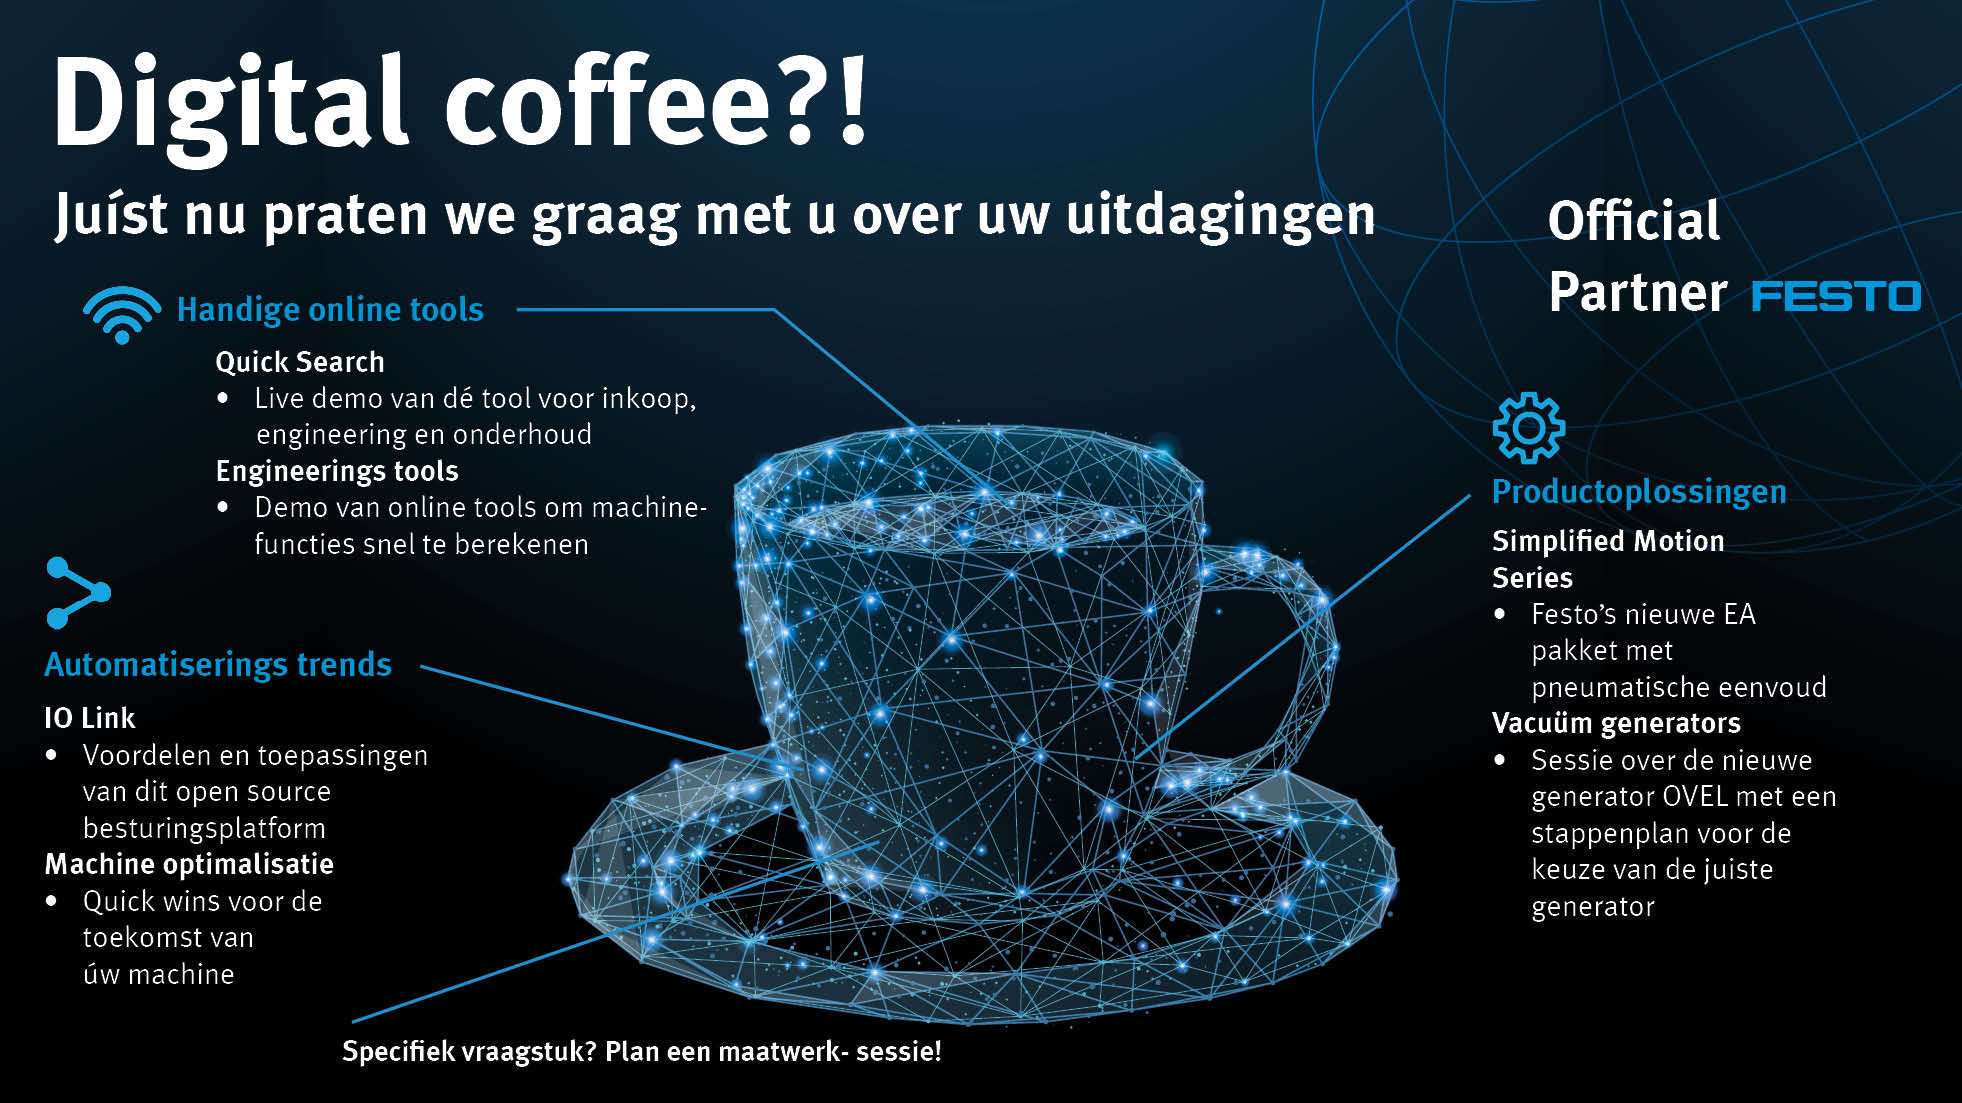 ppt voorpagina digital coffee.jpg